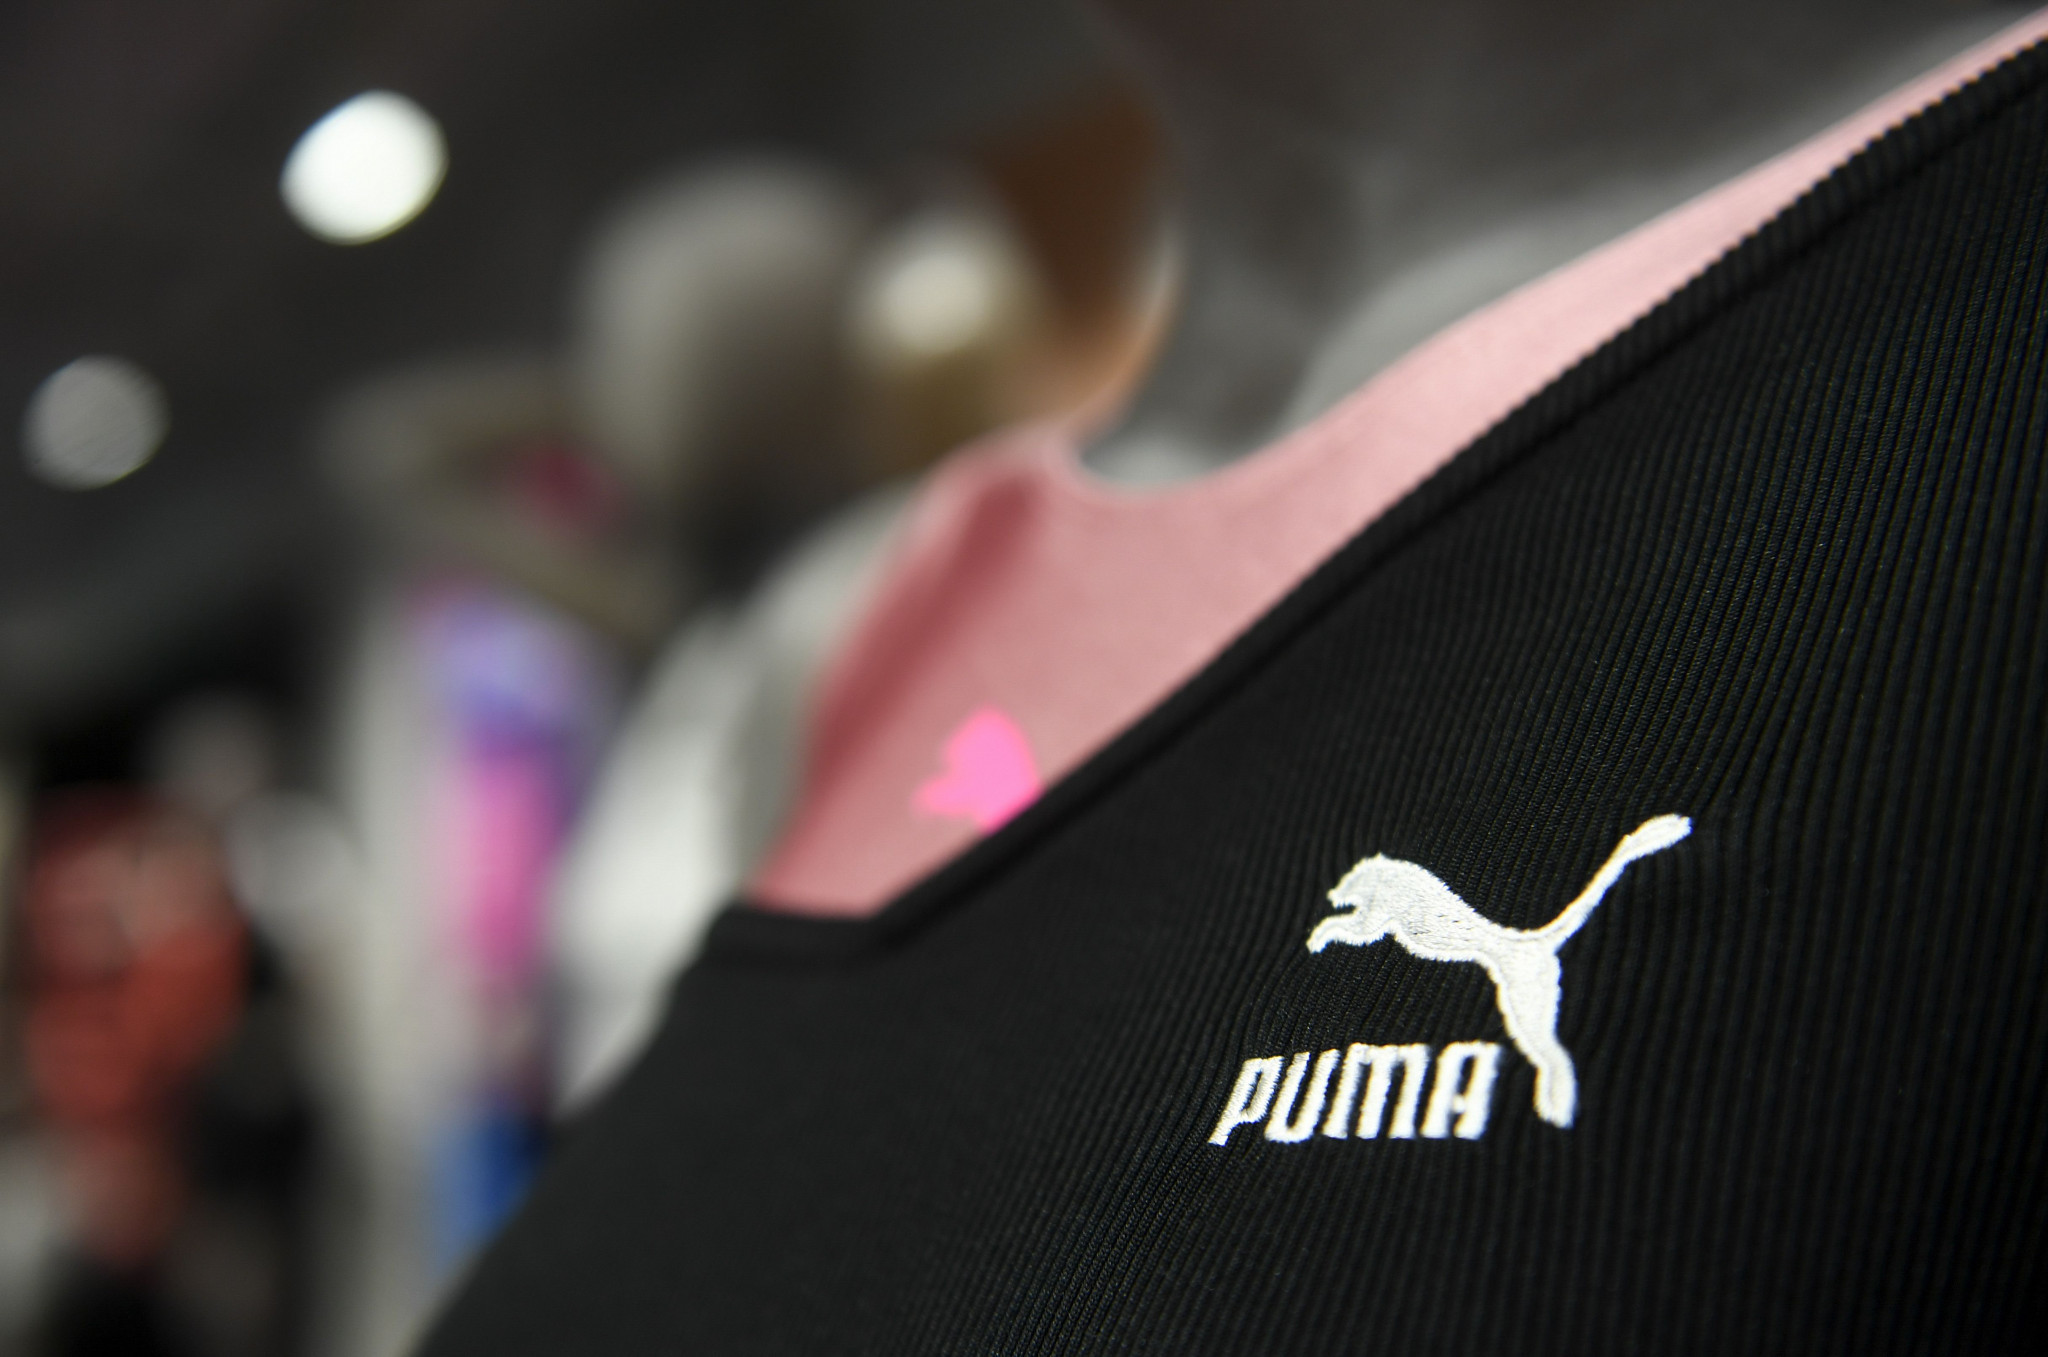 Puma see request to trademark Puma Tokyo 2021 turned down